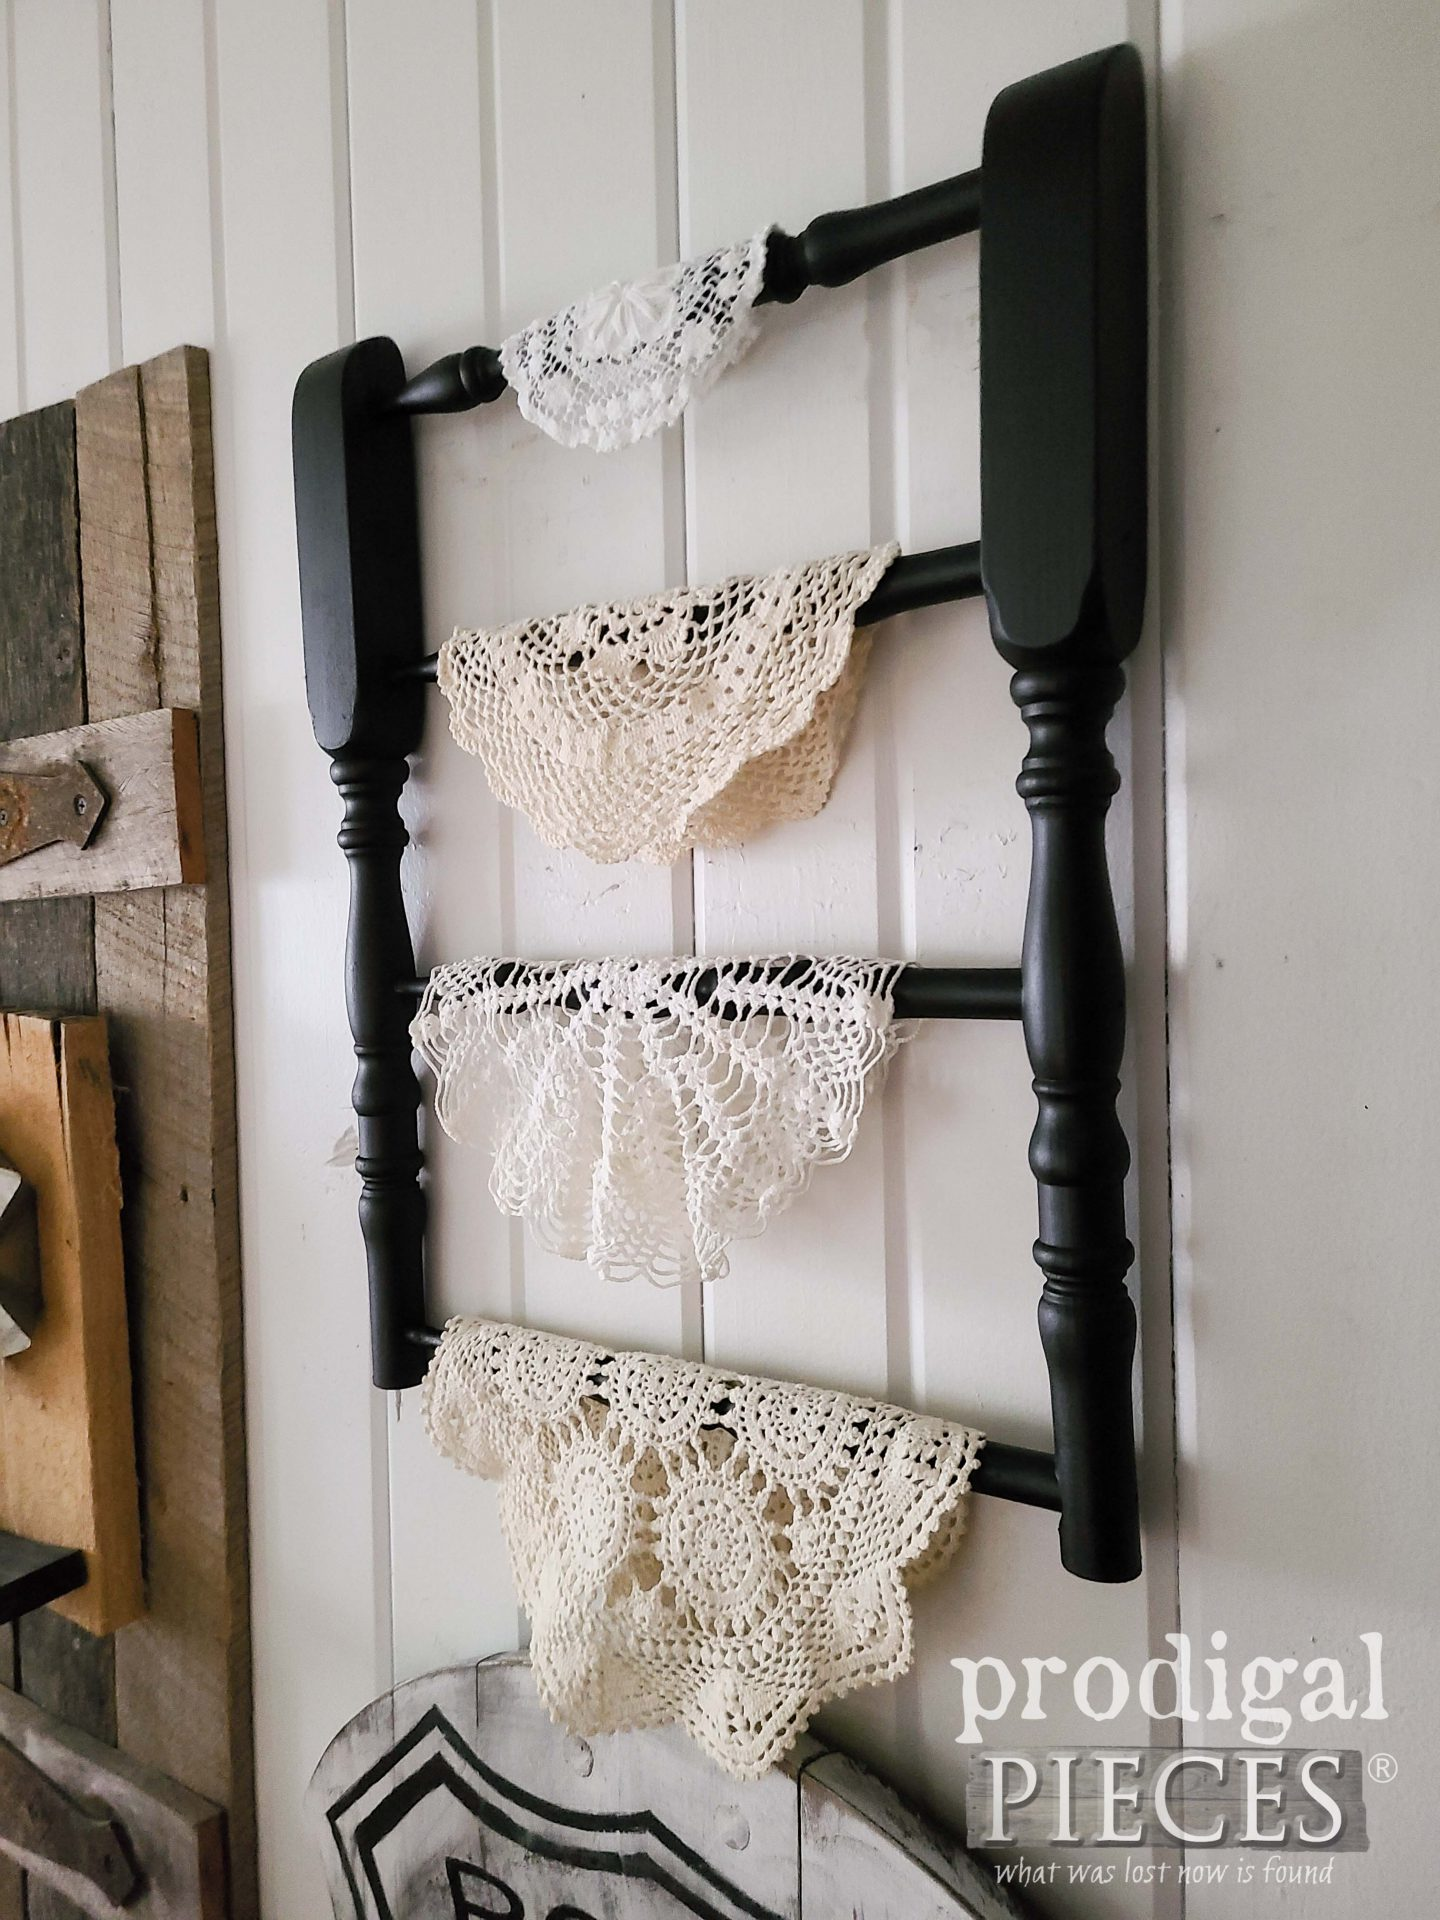 Side View Spindle Shelf by Larissa of Prodigal Pieces | prodigalpieces.com #prodigalpieces #farmhouse #diy #home #repurposed